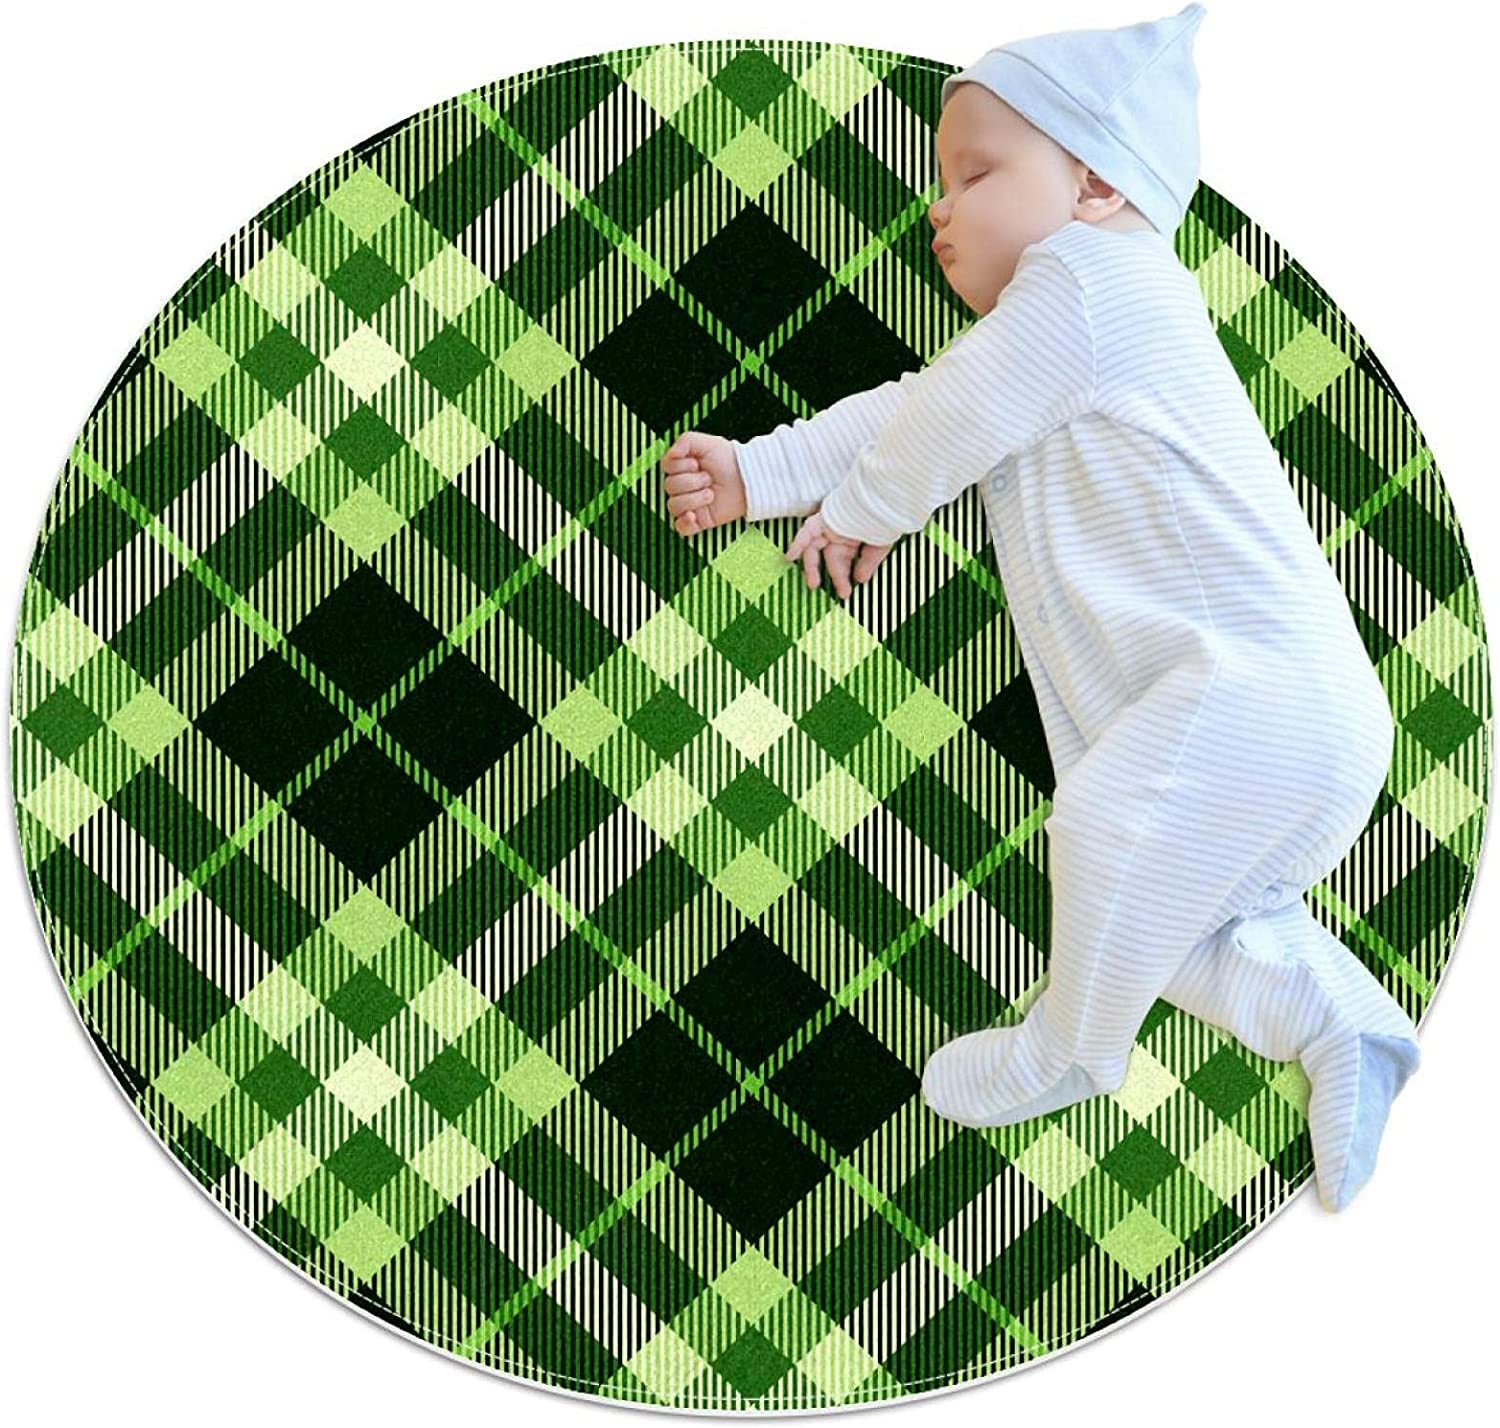 Plaid Fabric Patterns English Green Cr Finally resale Shipping included start Black Style Pattern Kids